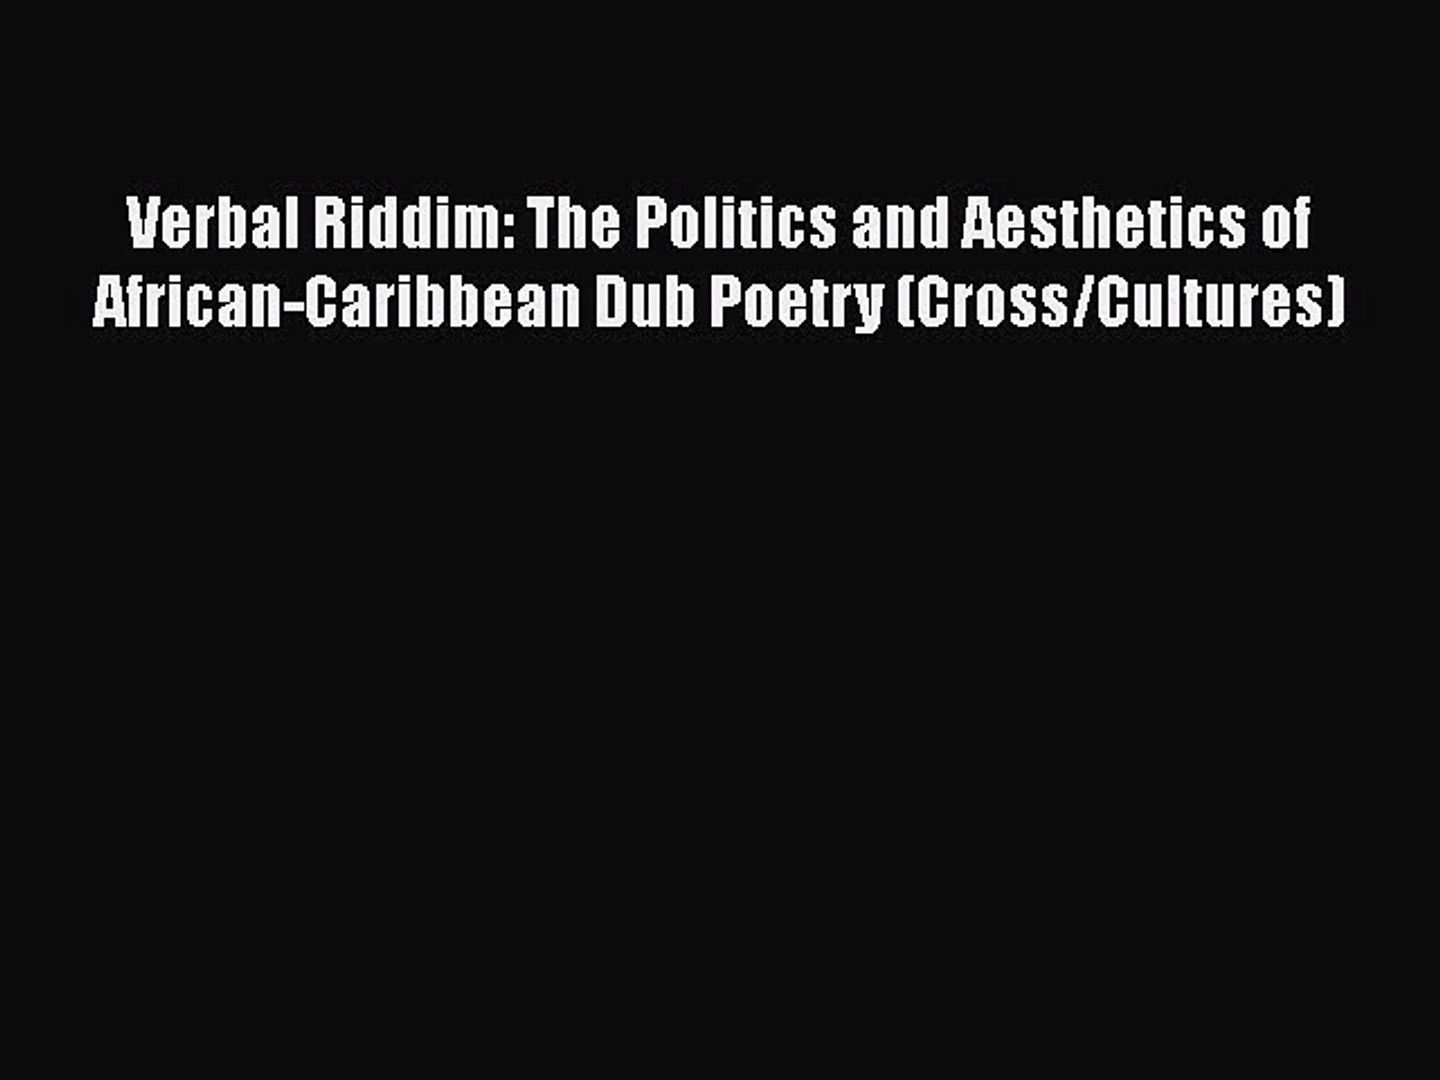 PDF Verbal Riddim: The Politics and Aesthetics of African-Caribbean Dub Poetry (Cross/Cultures)